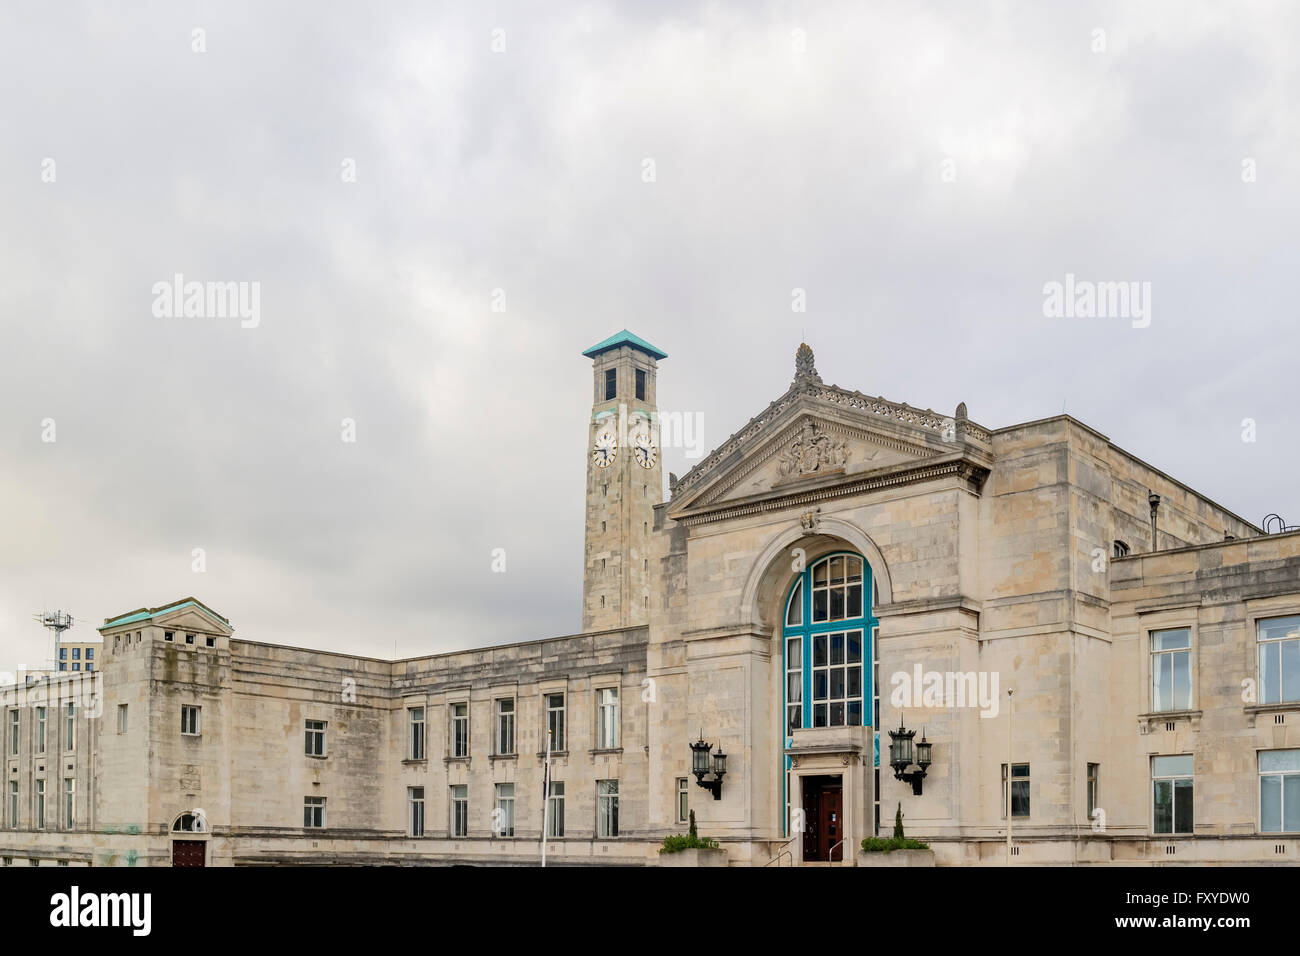 Beautiful government building - Southampton City Council in a cloudy day - Stock Image